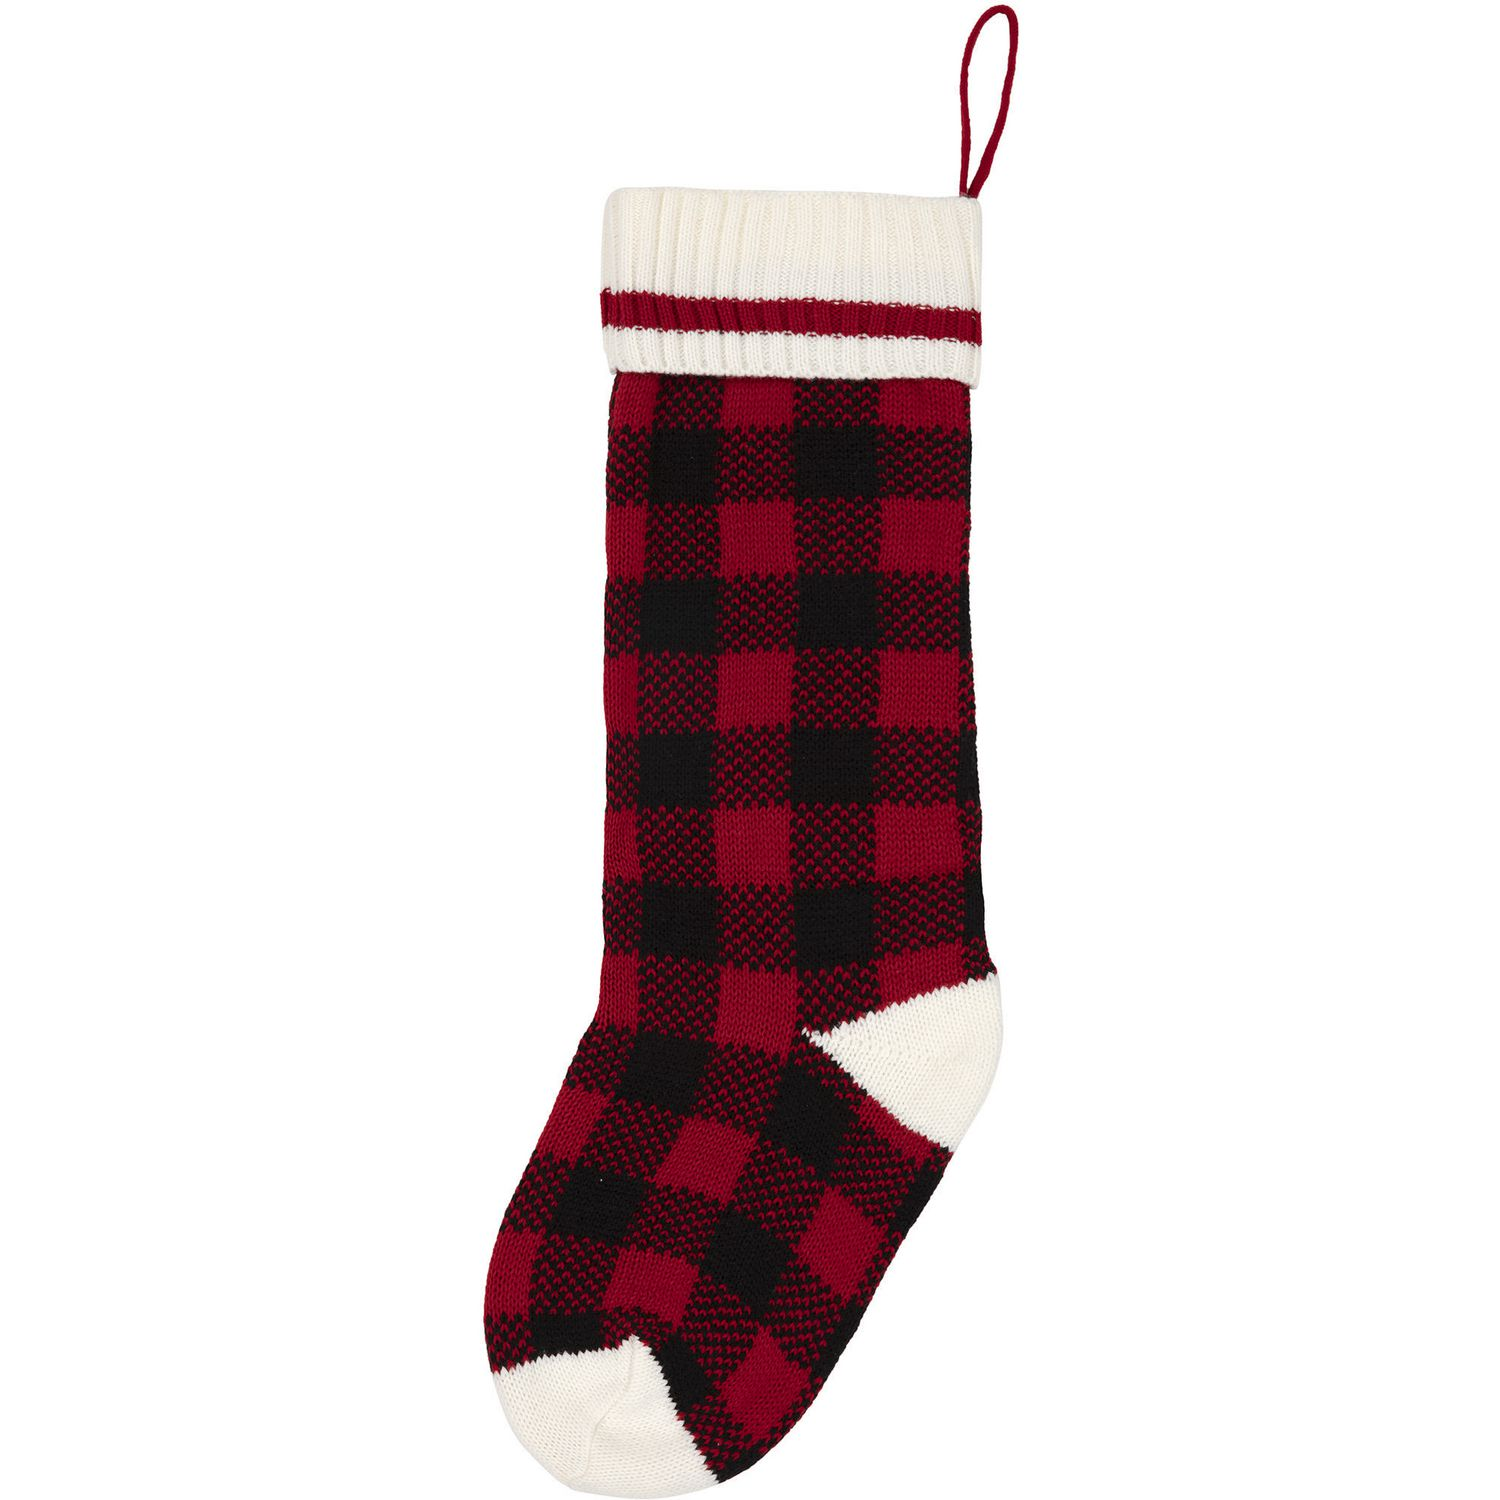 Canadiana Christmas Stocking Buffalo Plaid Walmart Canada